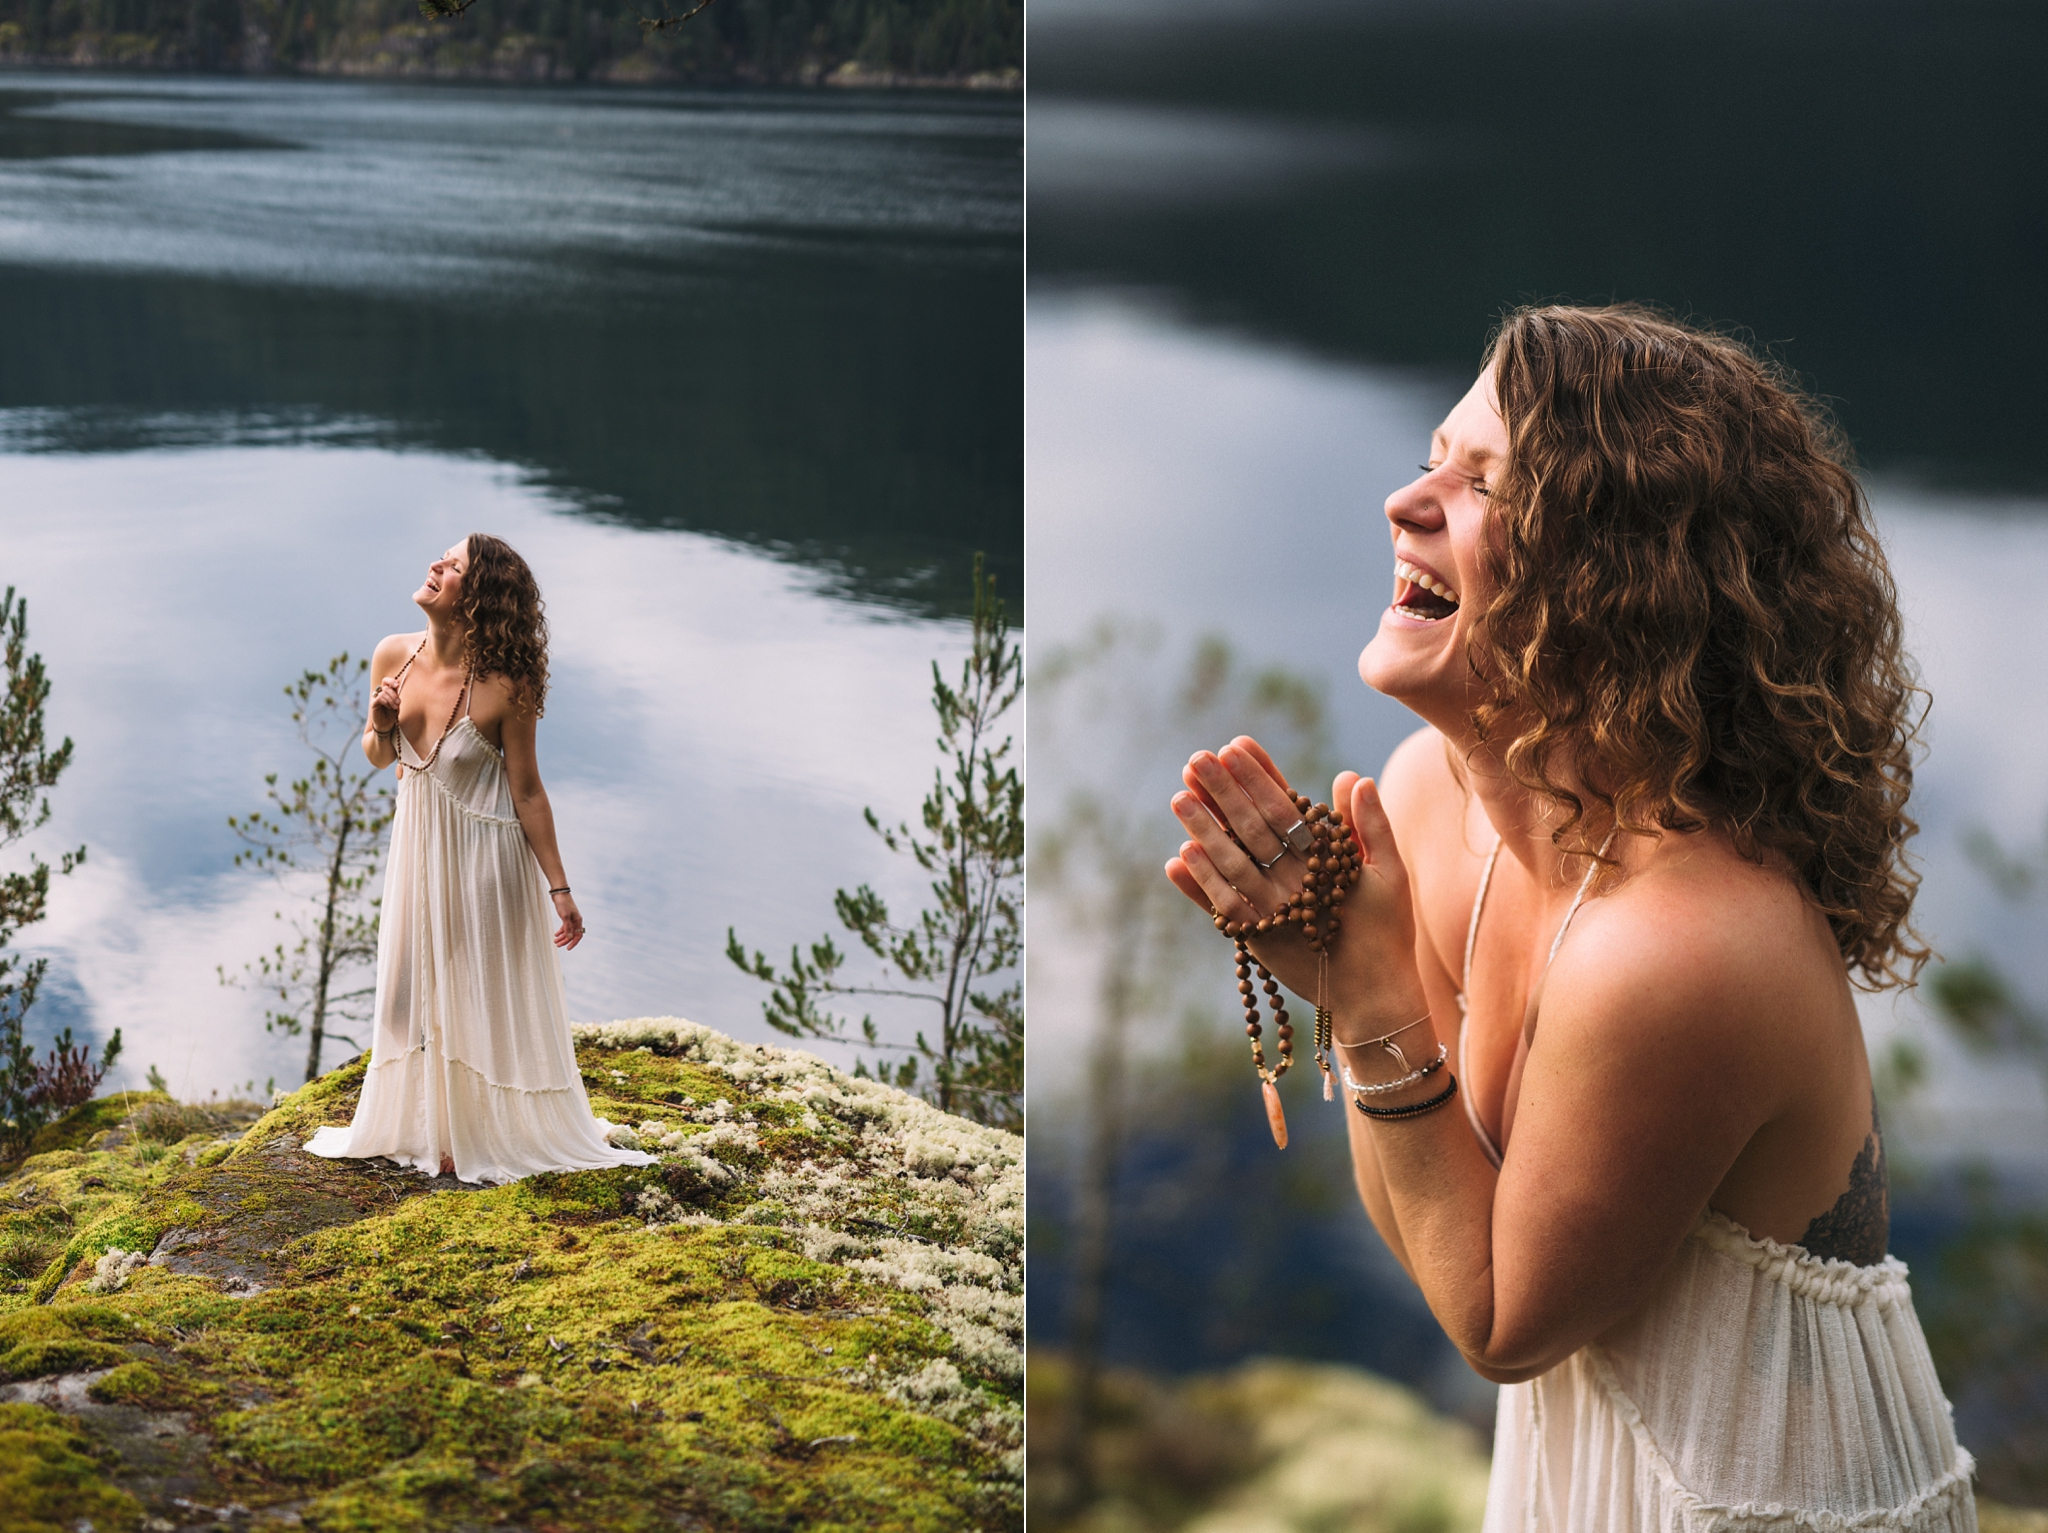 kaihla_tonai_intimate_wedding_elopement_photographer_3356